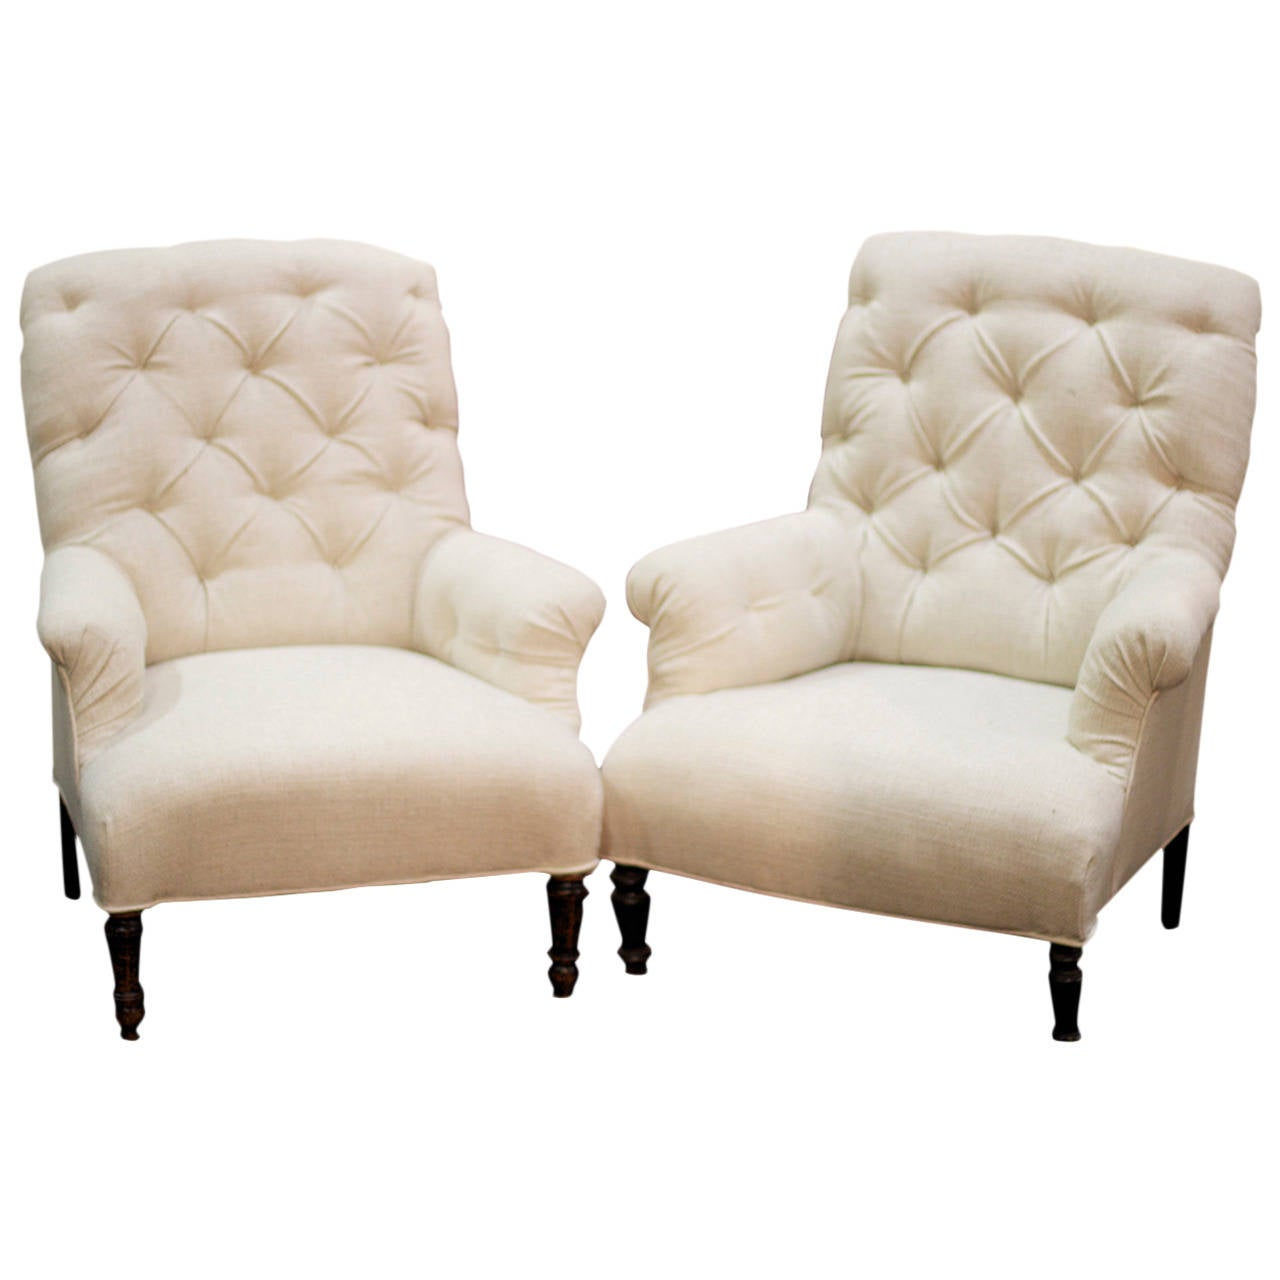 Pair of 1880s French Tufted Club Chairs 1